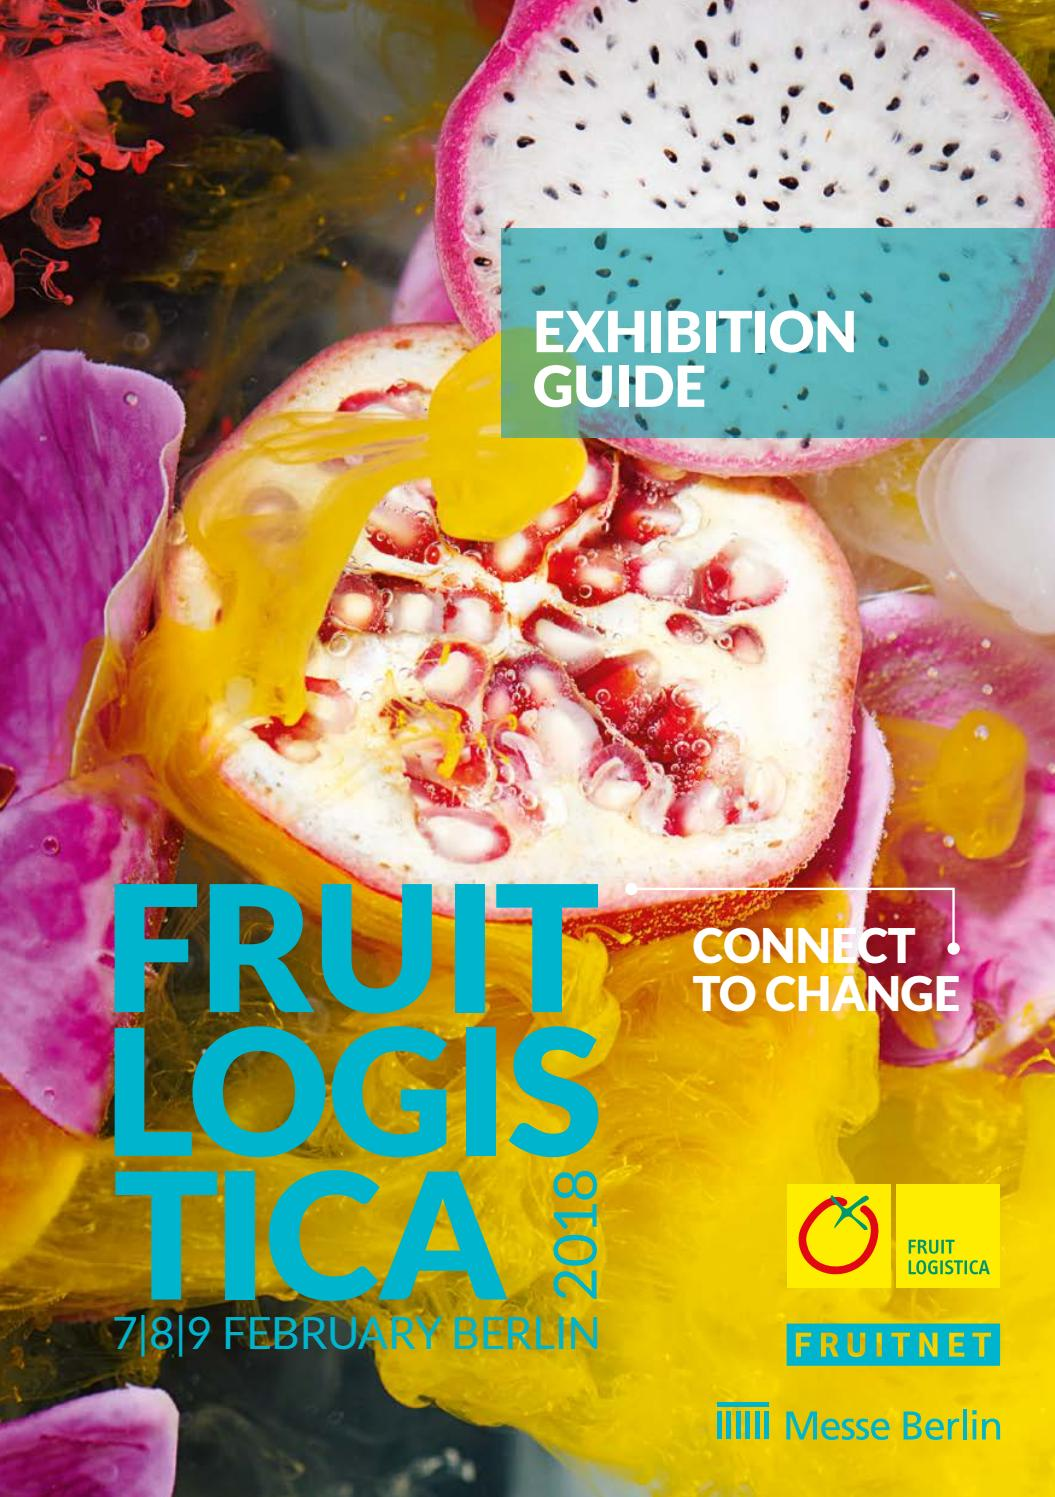 exhibition guide fruit logistica 2018 by fruchthandel